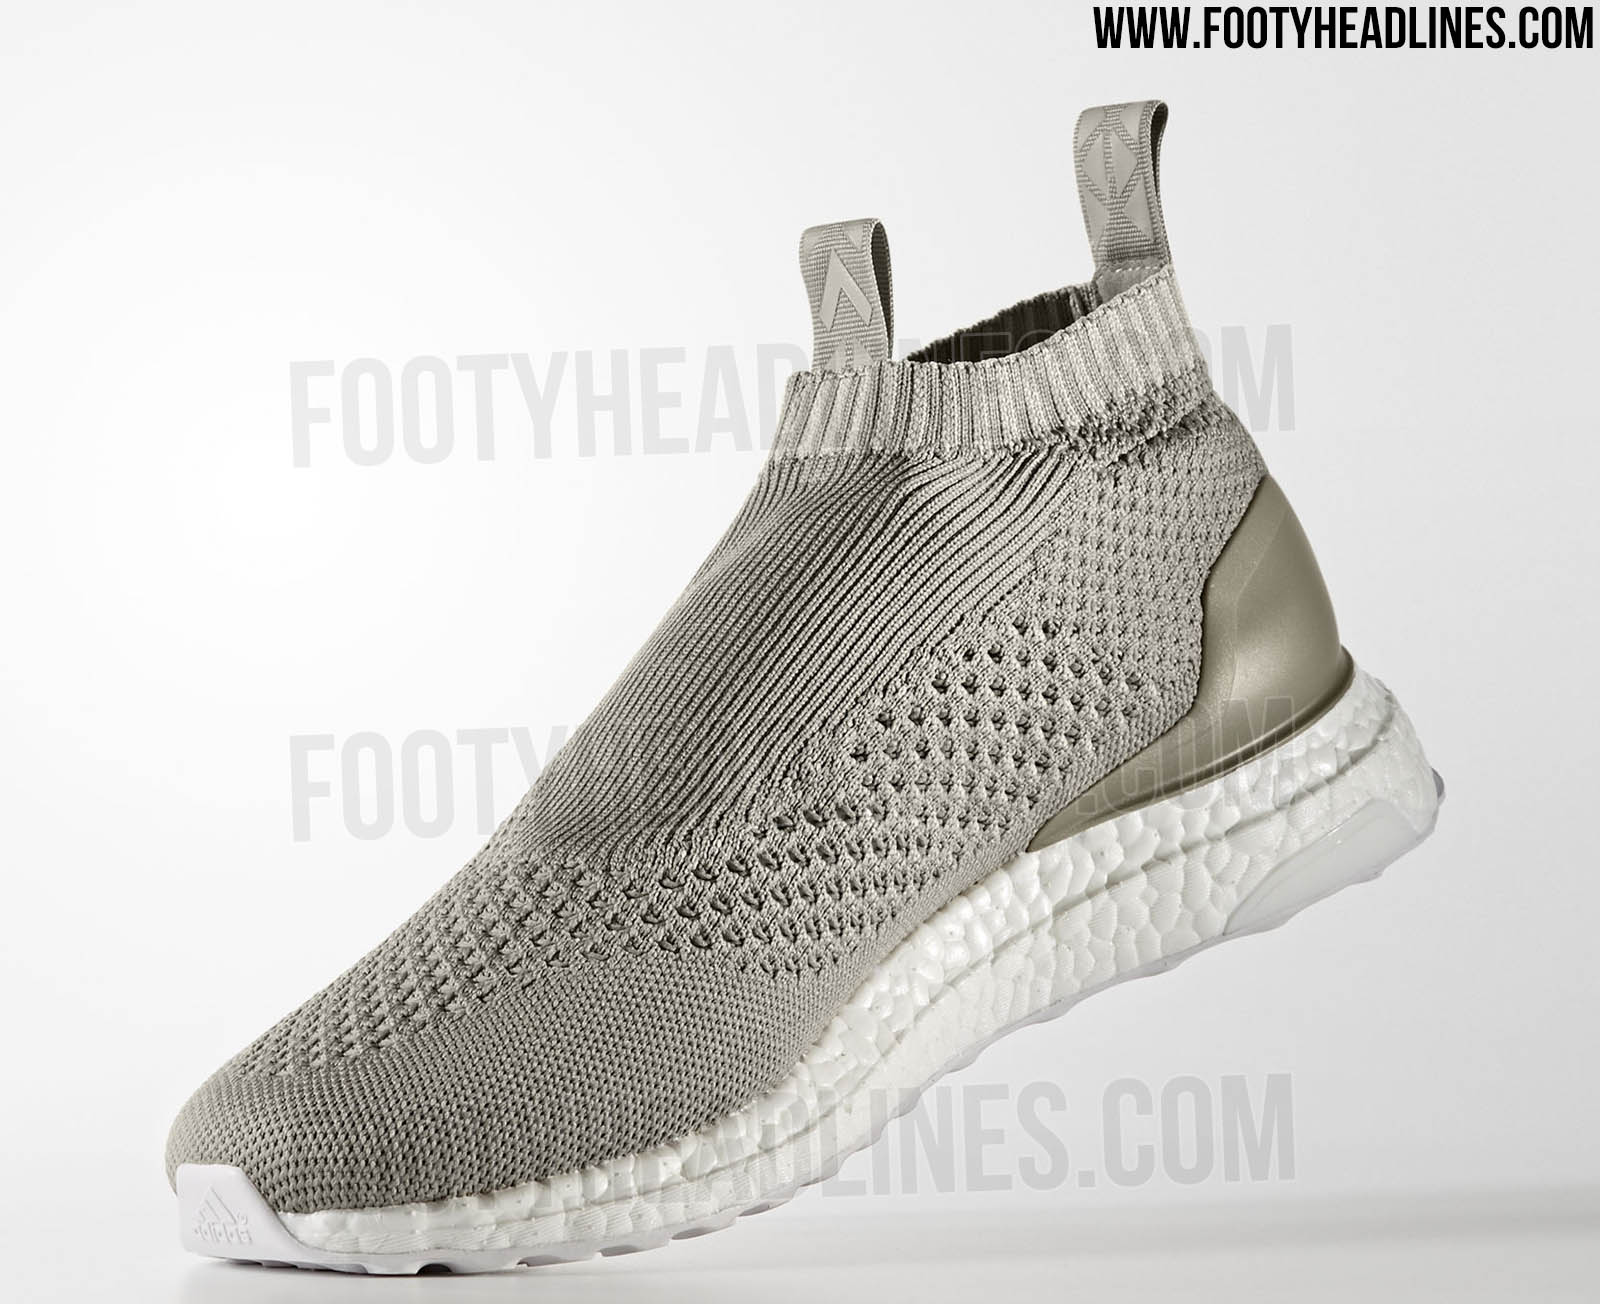 newest collection 8b452 e7217 ... Unexpected Comeback - Limited-Edition Sesame Adidas Ace 16+ Ultra Boost  Earth Storm Released adidas ACE 16+ PureControl Ultra Boost Clay CG3655 ...